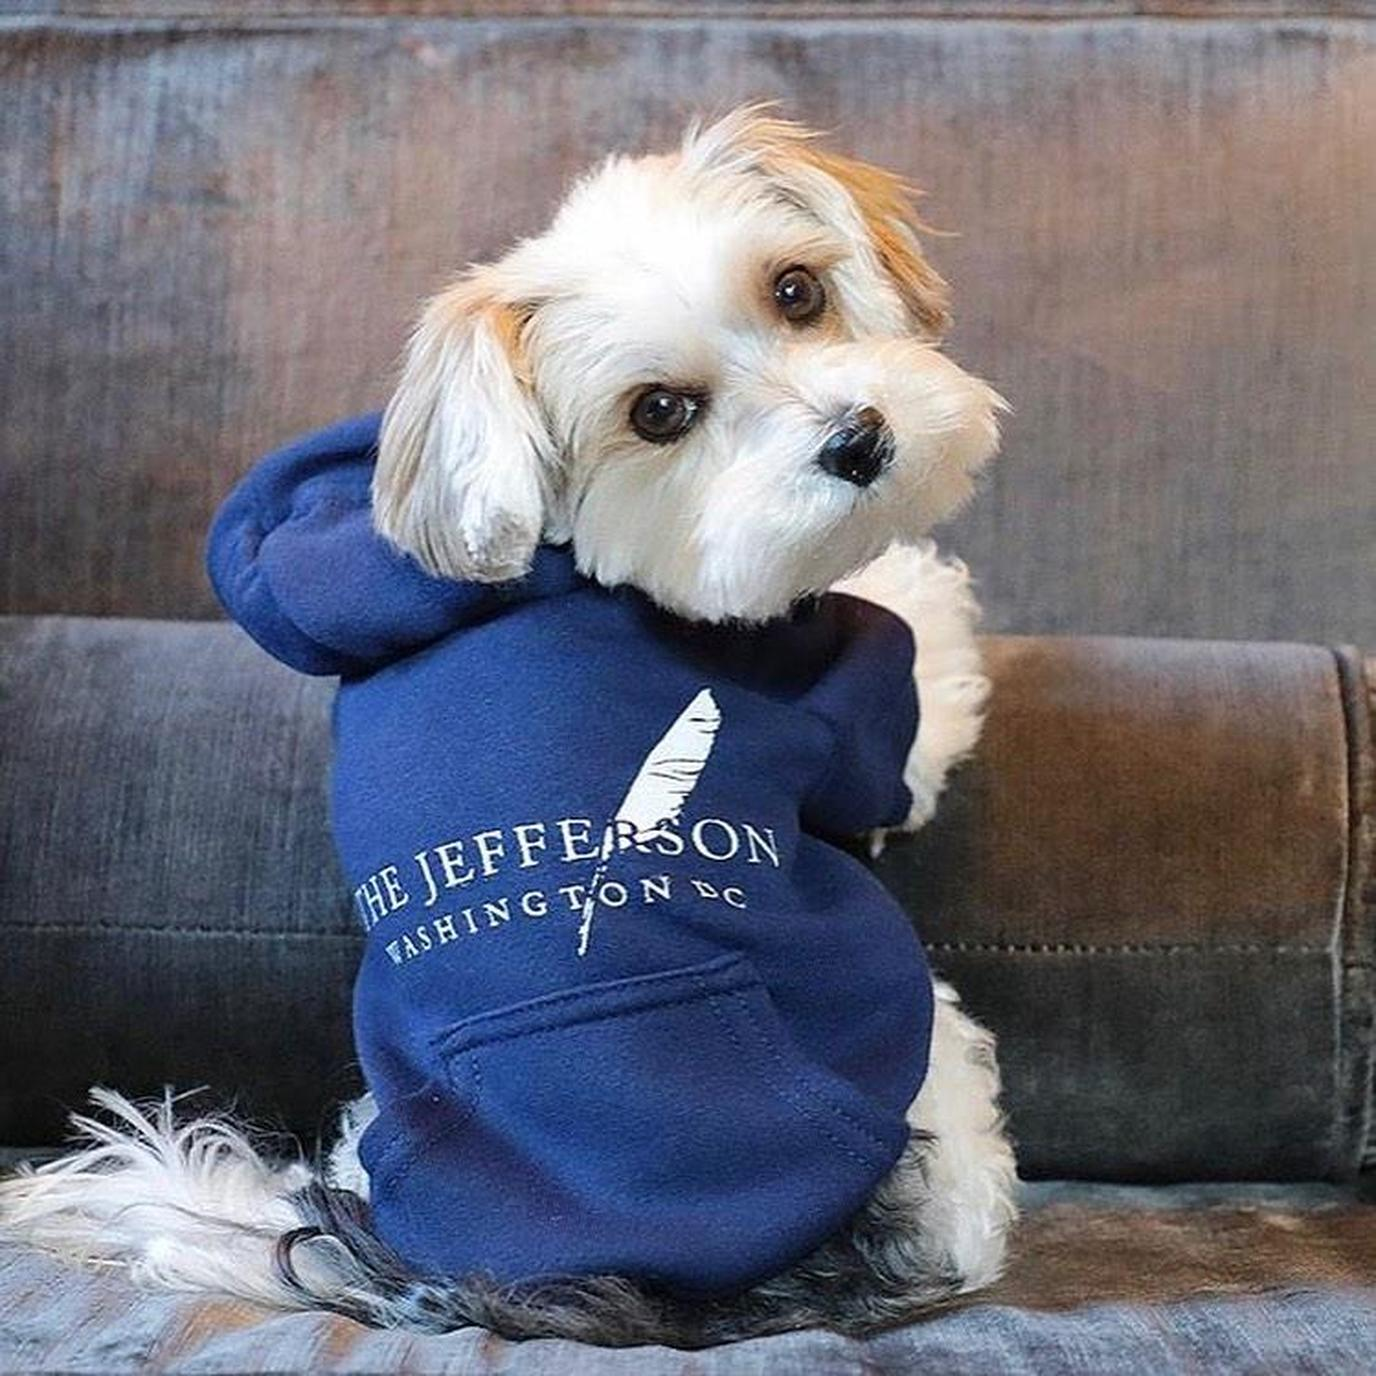 Book a stay at The Jefferson pet-friendly hotel in Washington, D.C.